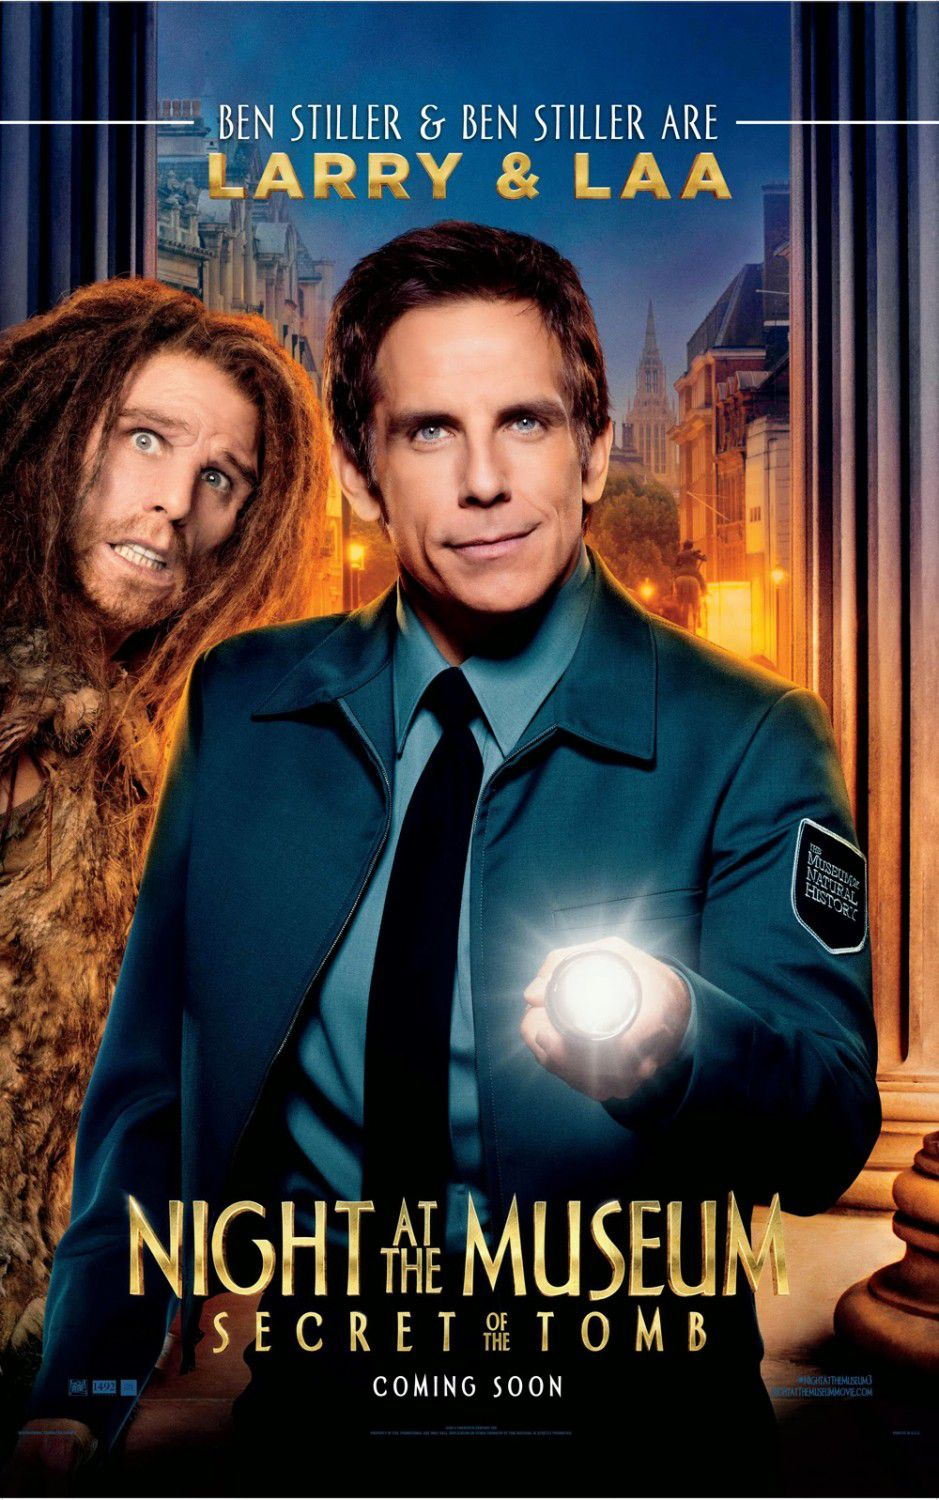 Una Notte al Museo 3 - Night at the Museum 3 - Secret of the Tomb - poster - Ben Stiller - Larry and Laa